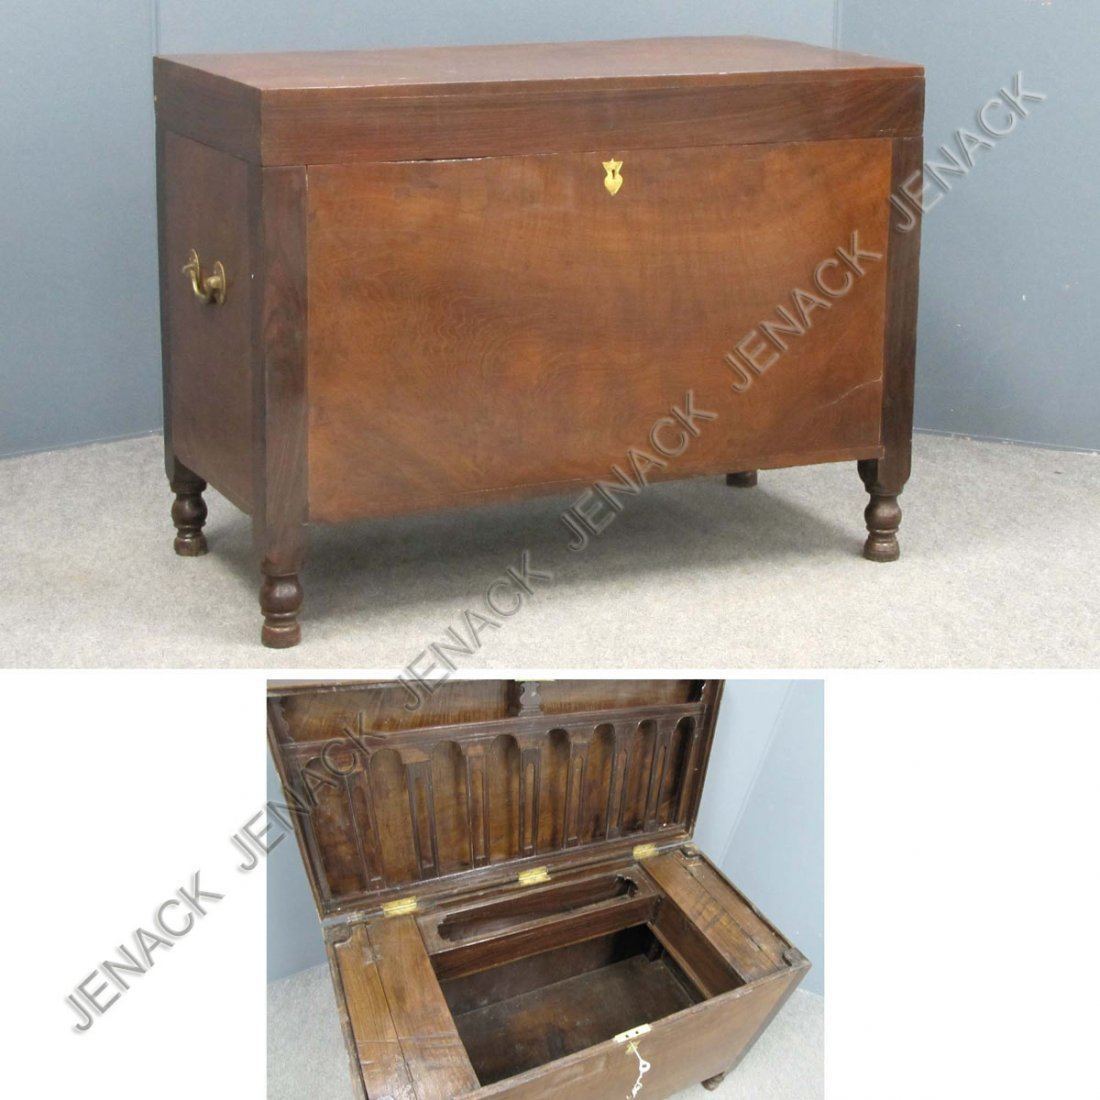 23: ANGLO-INDIAN CARVED MAHOGANY/TEAK CAMPAIGN TRUNK